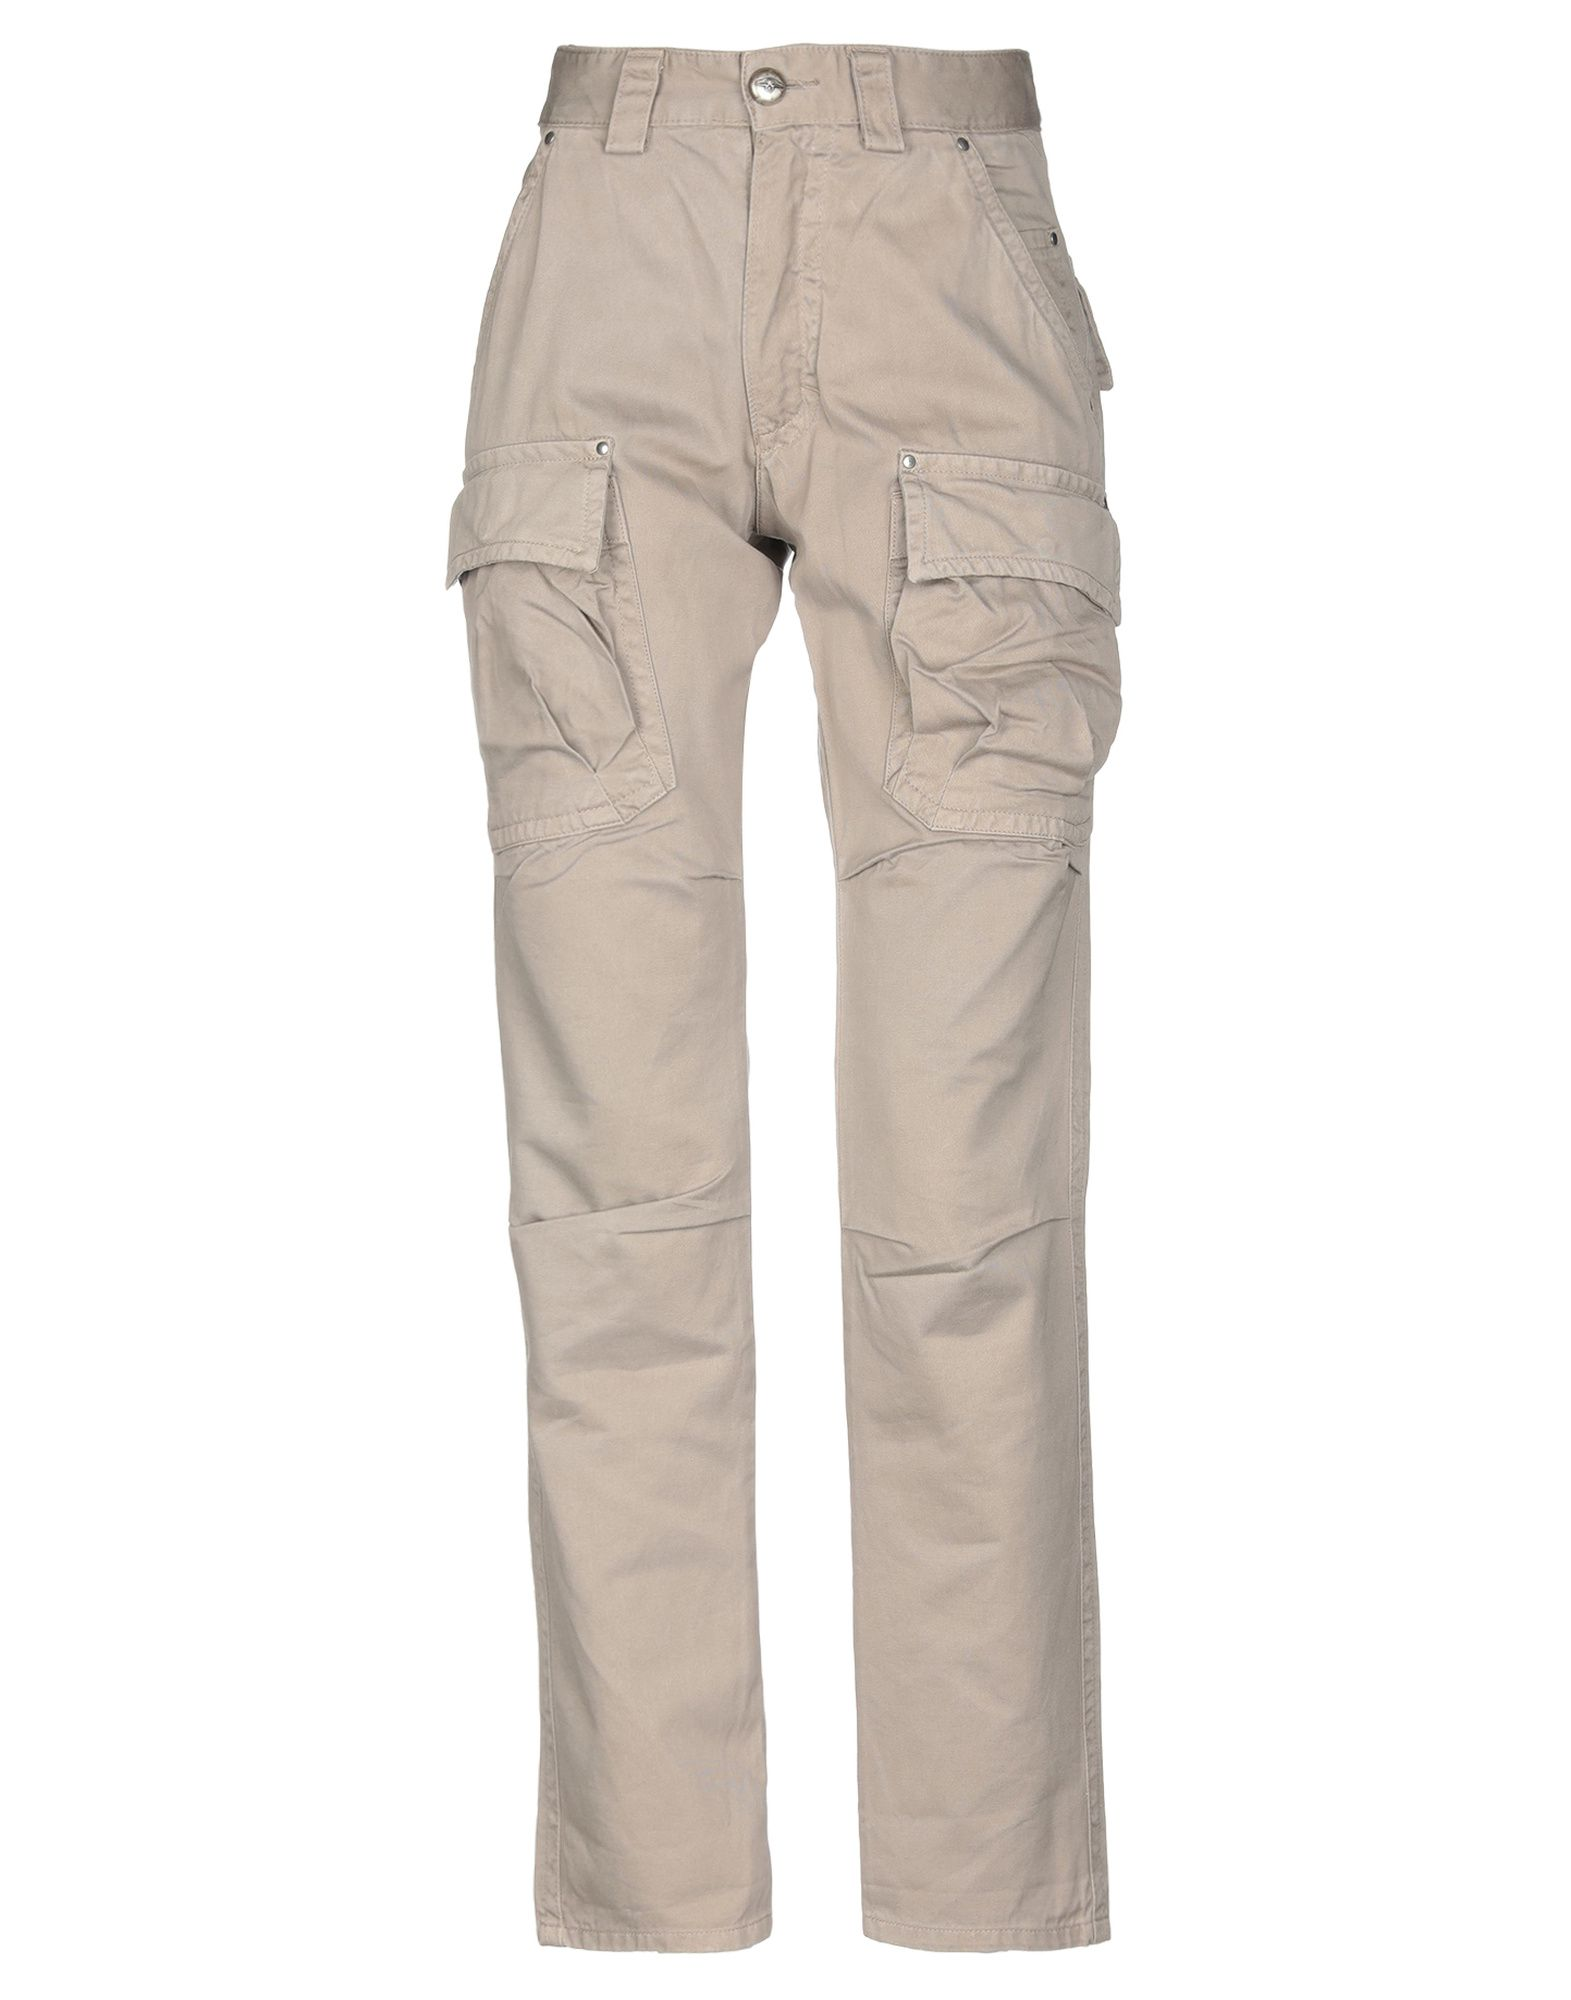 MY PANT'S Повседневные брюки брюки quelle my size 1000972 page 9